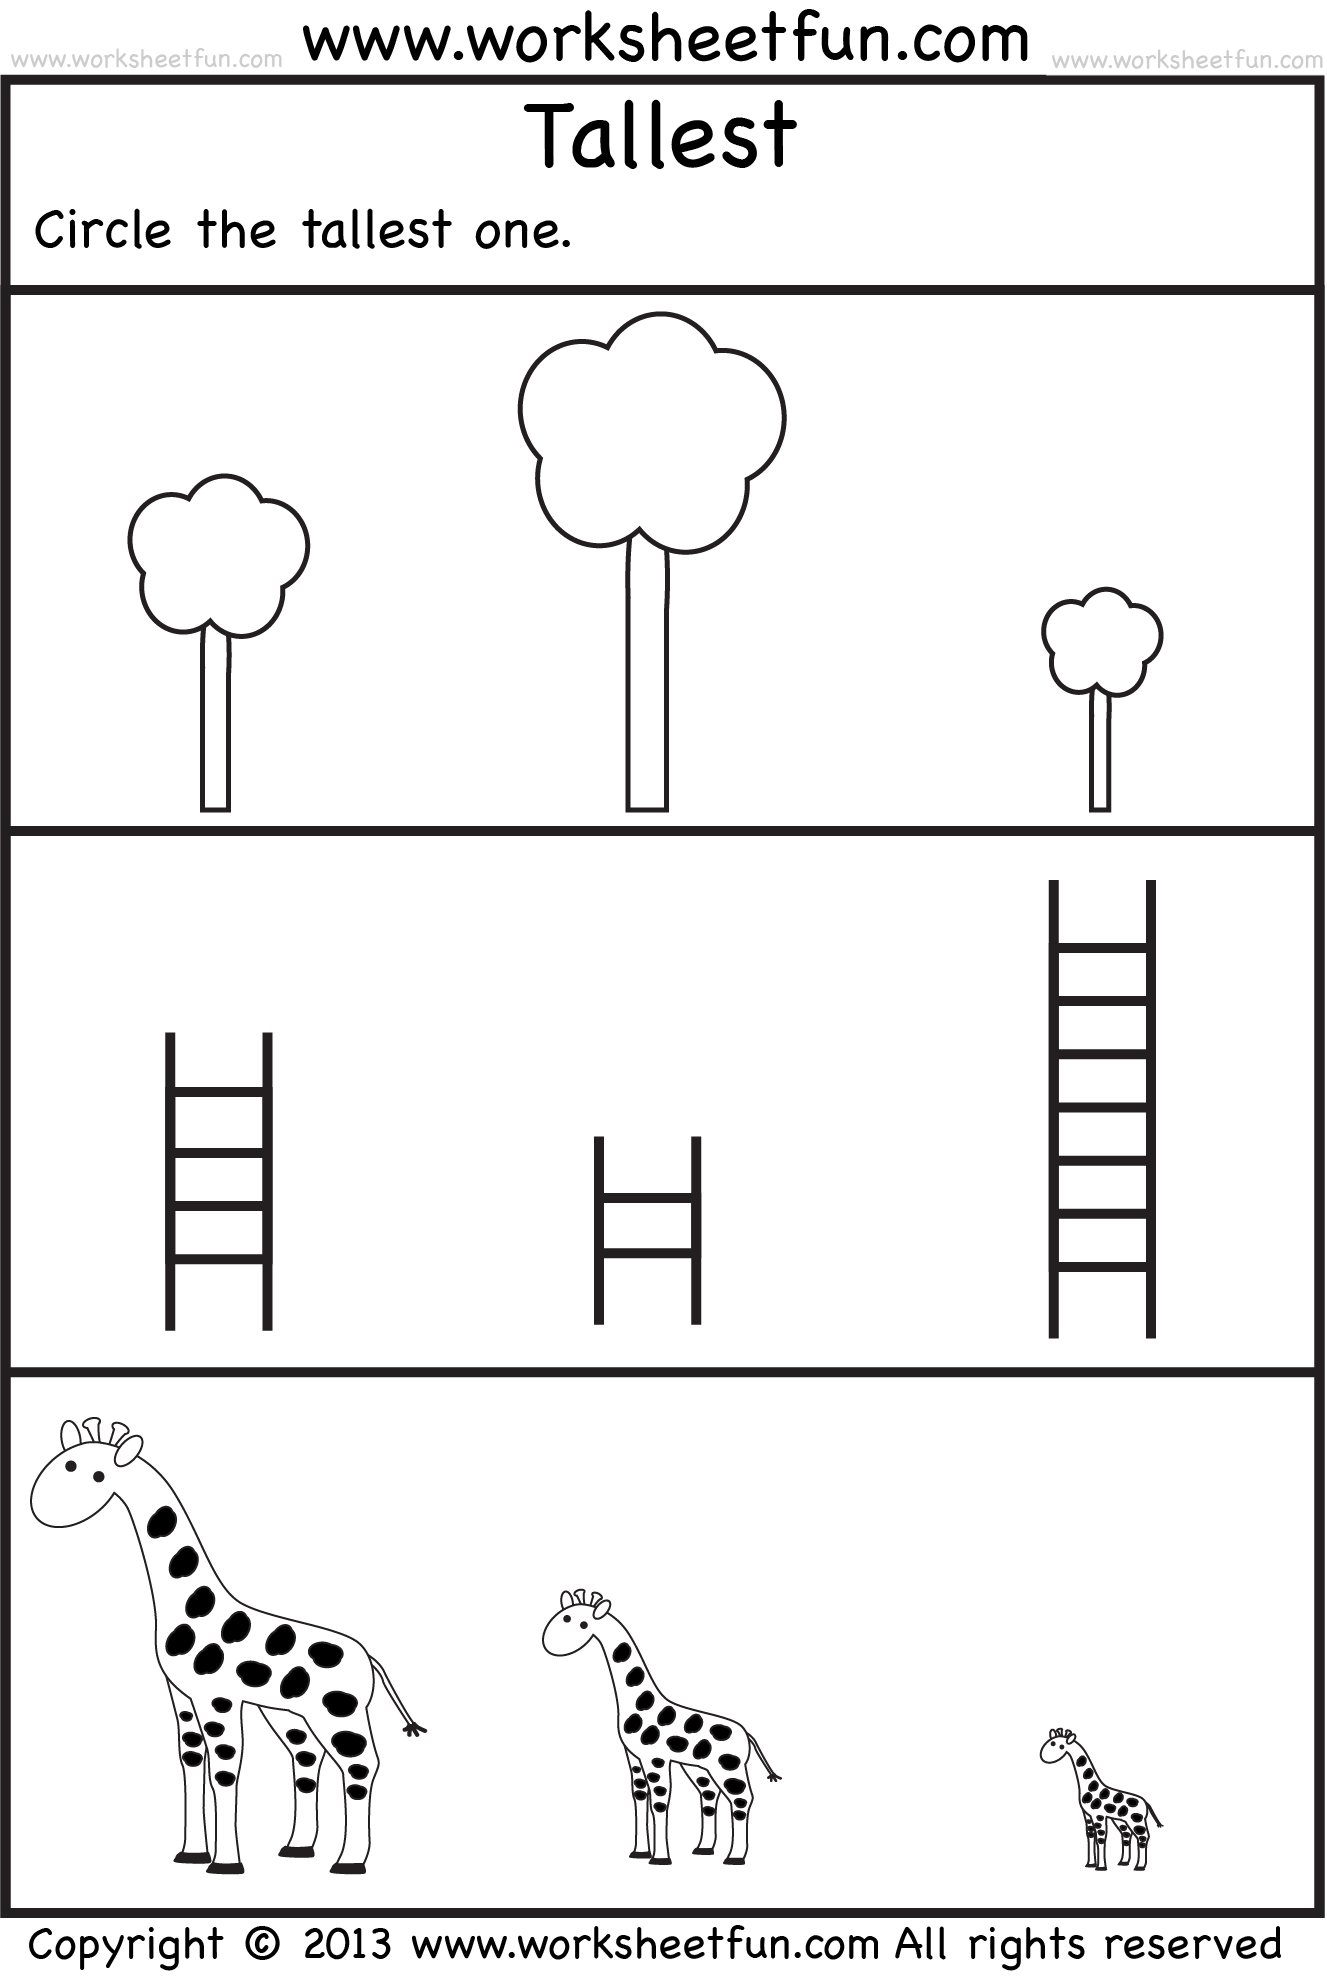 Tallest 2 Preschool Worksheets Free Printable Worksheets Worksheetfun